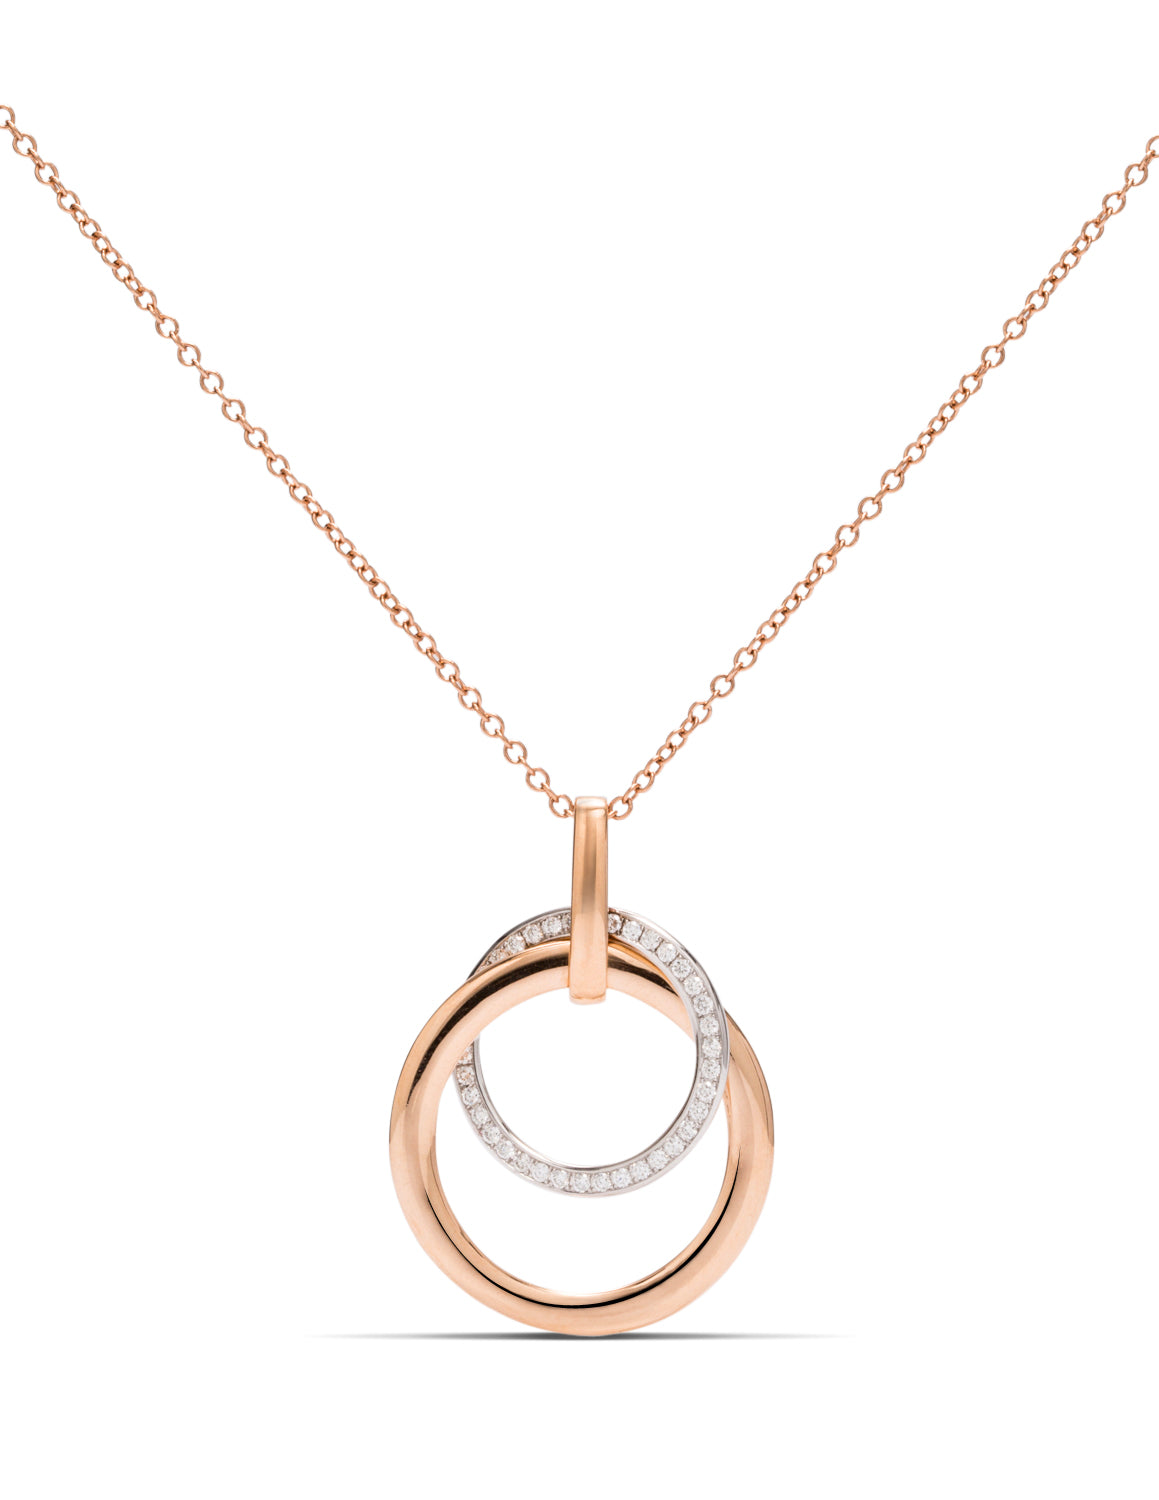 Rose Gold and Diamond Double Circle Pendant - Charles Koll Jewellers